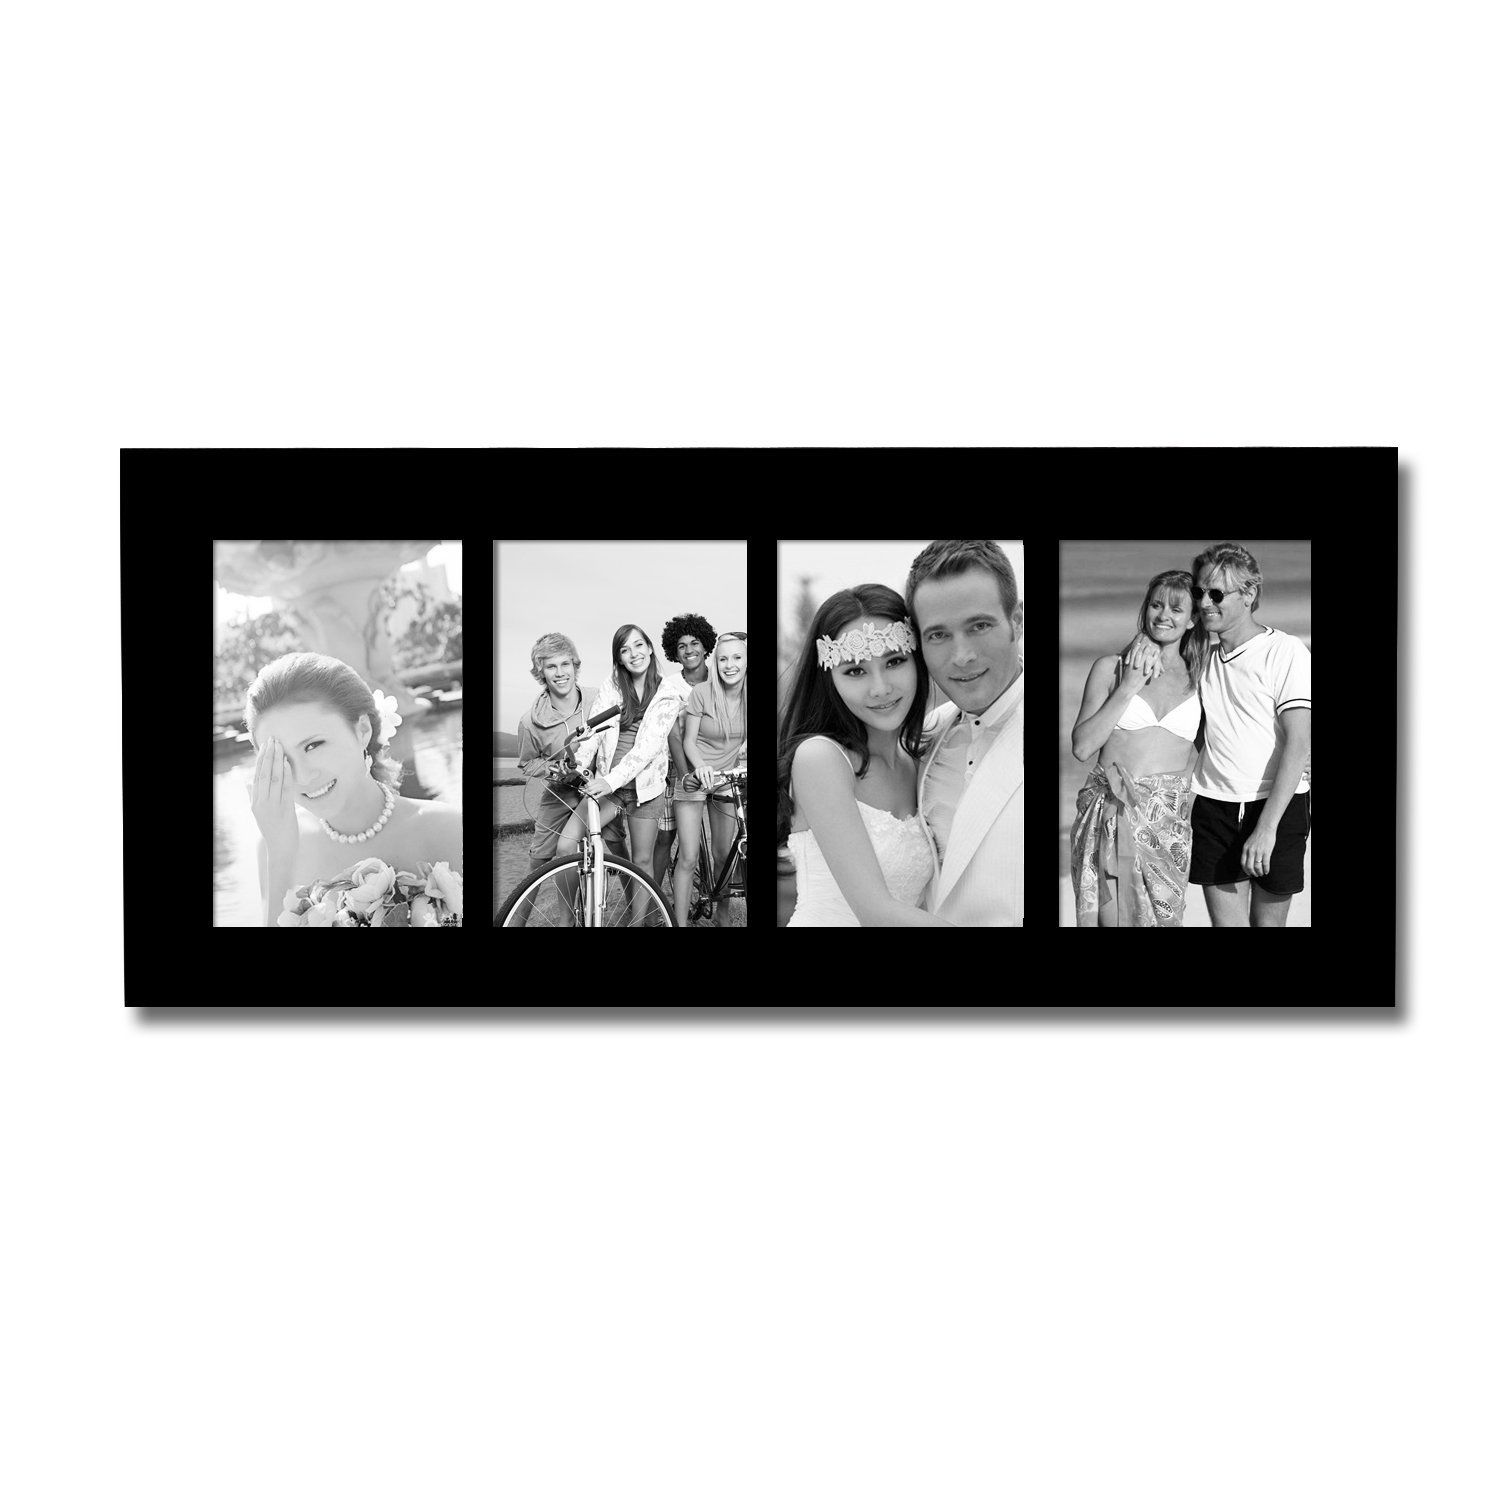 Adeco Decorative Black Wood Divided Picture Photo Frame 4 Opening Pf0424 Wall Hanging Photo Frames Collage Picture Frames Picture Frame Colors